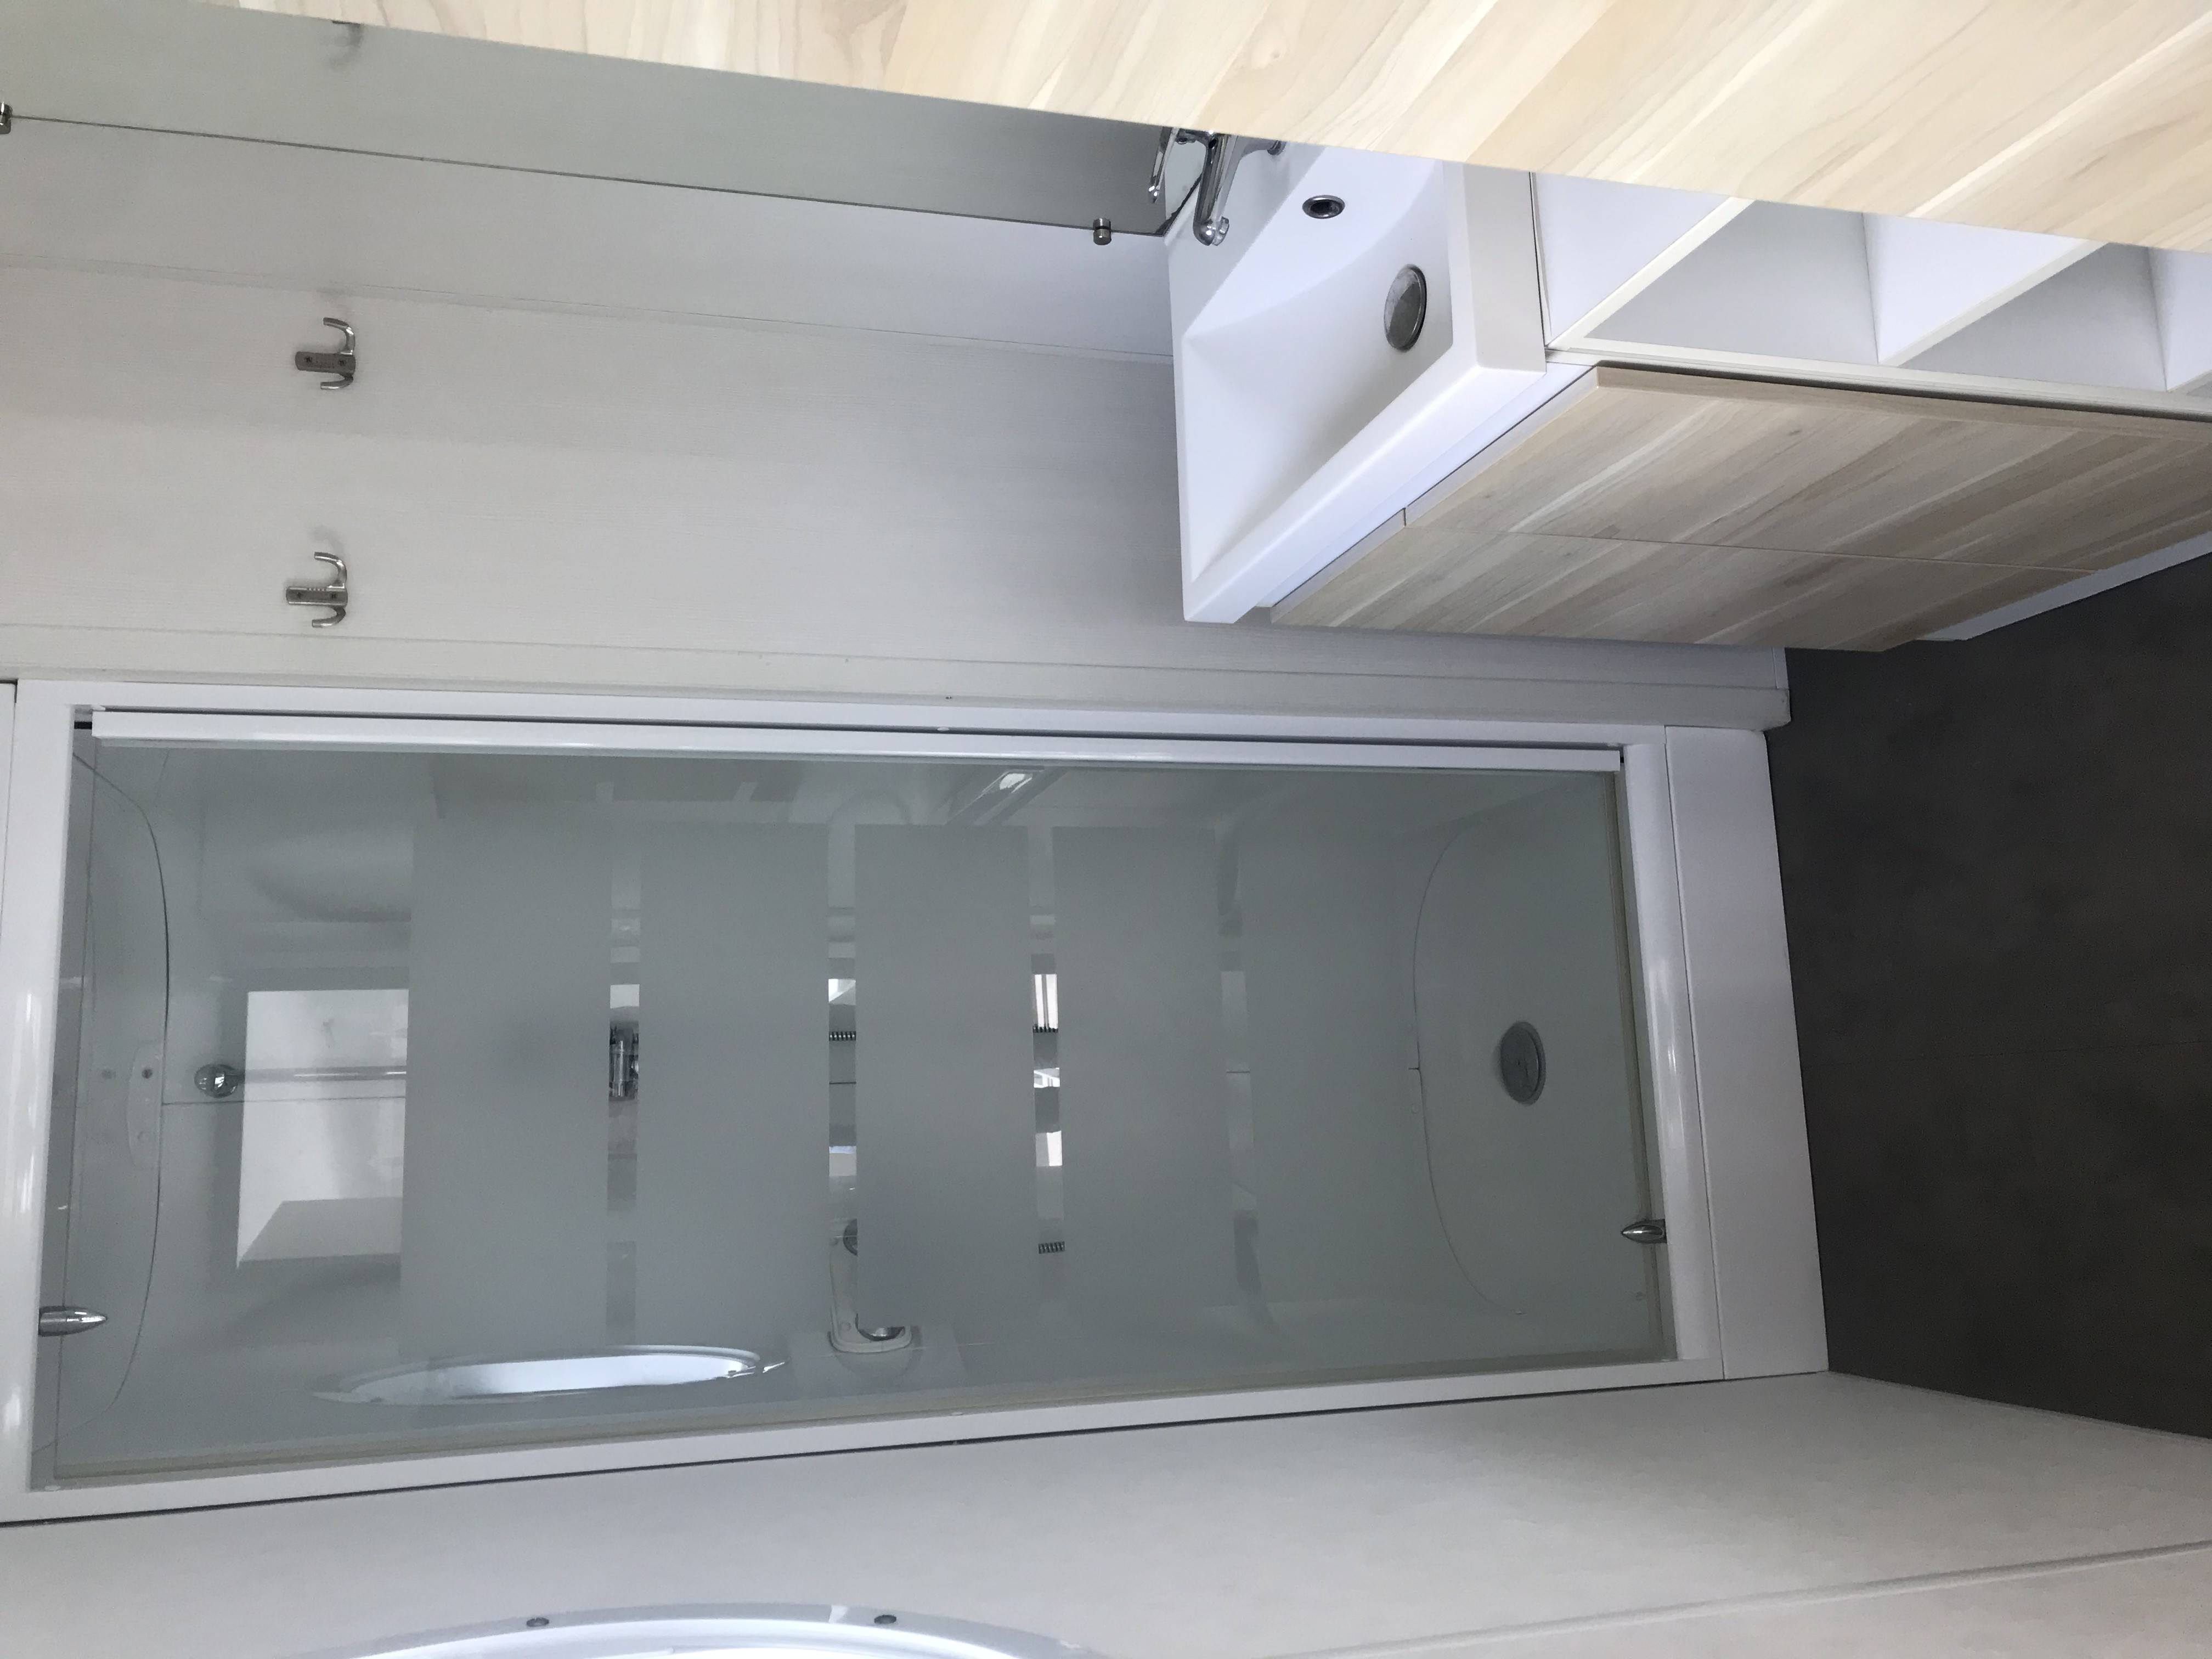 3 Bedrooms mobil-home